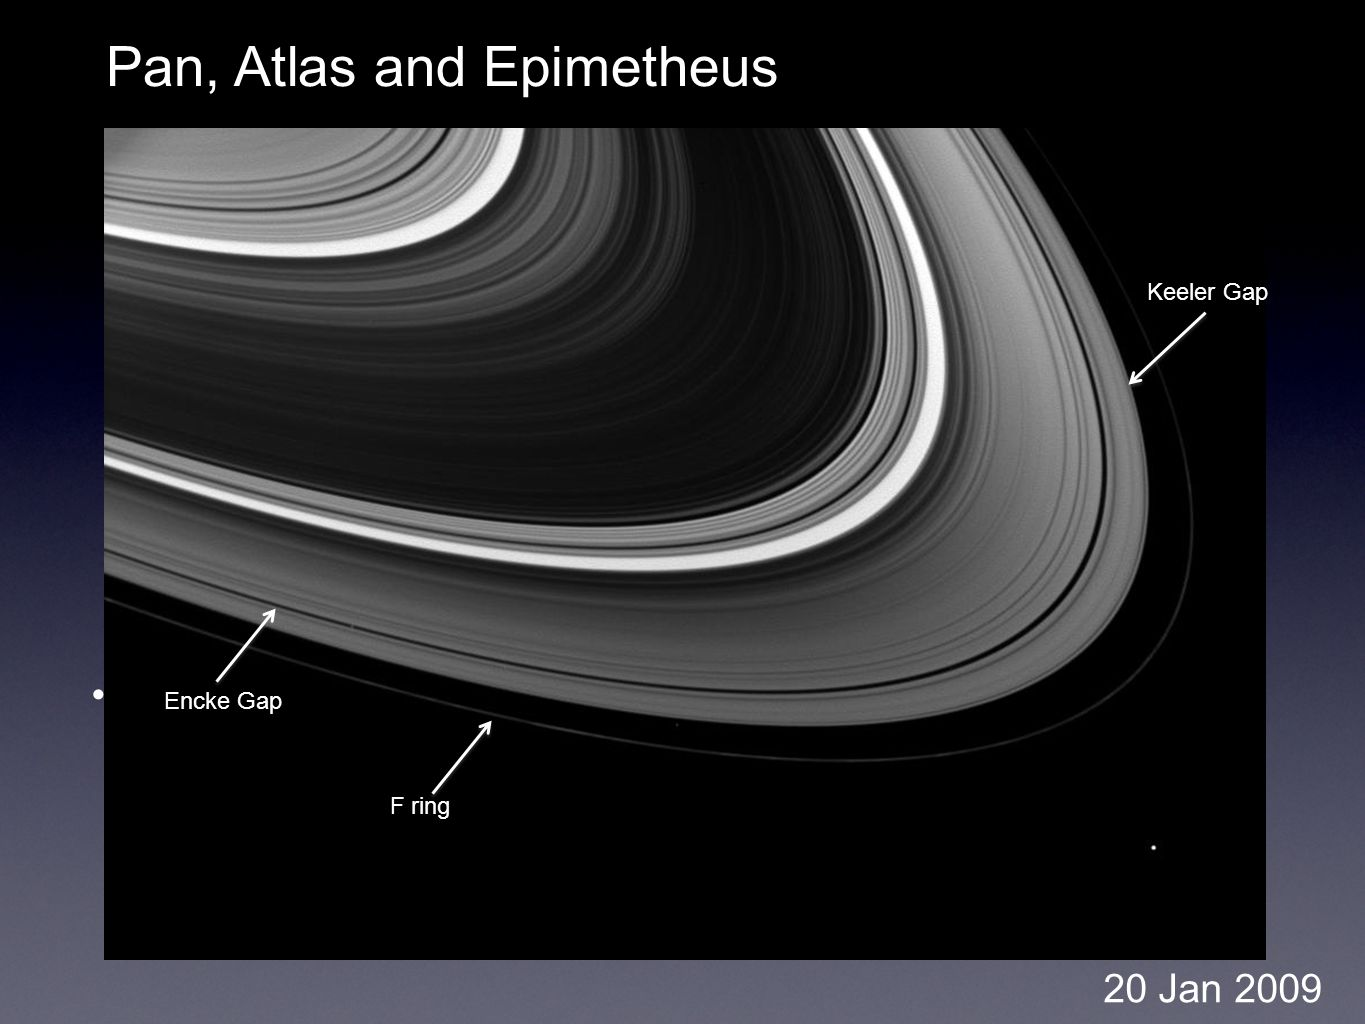 Pan, Atlas and Epimetheus 20 Jan 2009 F ring Encke Gap Keeler Gap